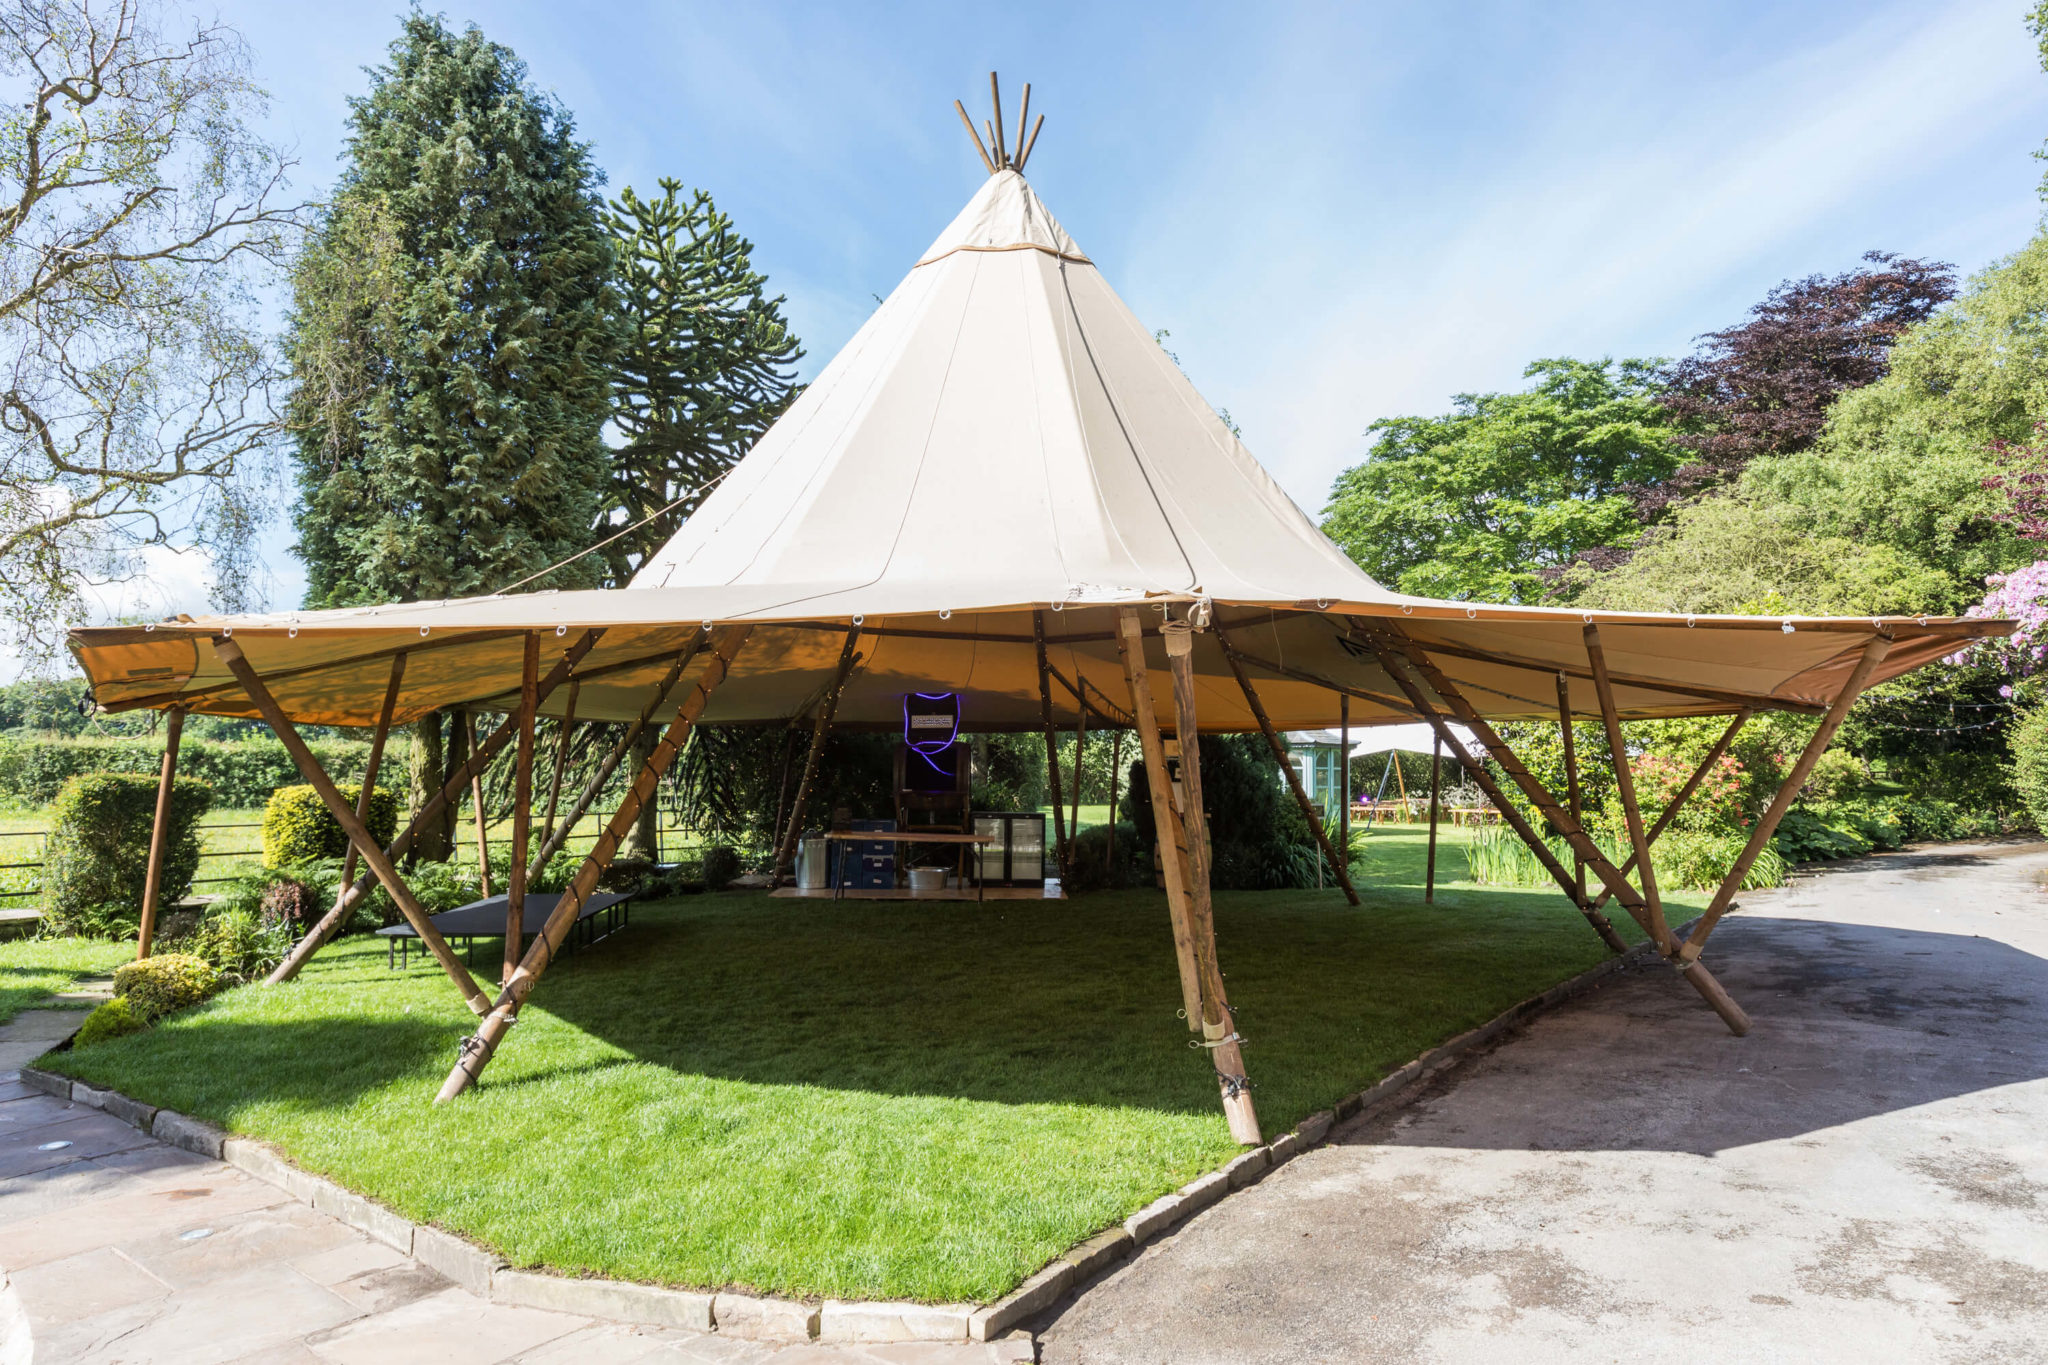 A photograph of a Tipi tent setup similar to a gazebo providing a shaded area for guests